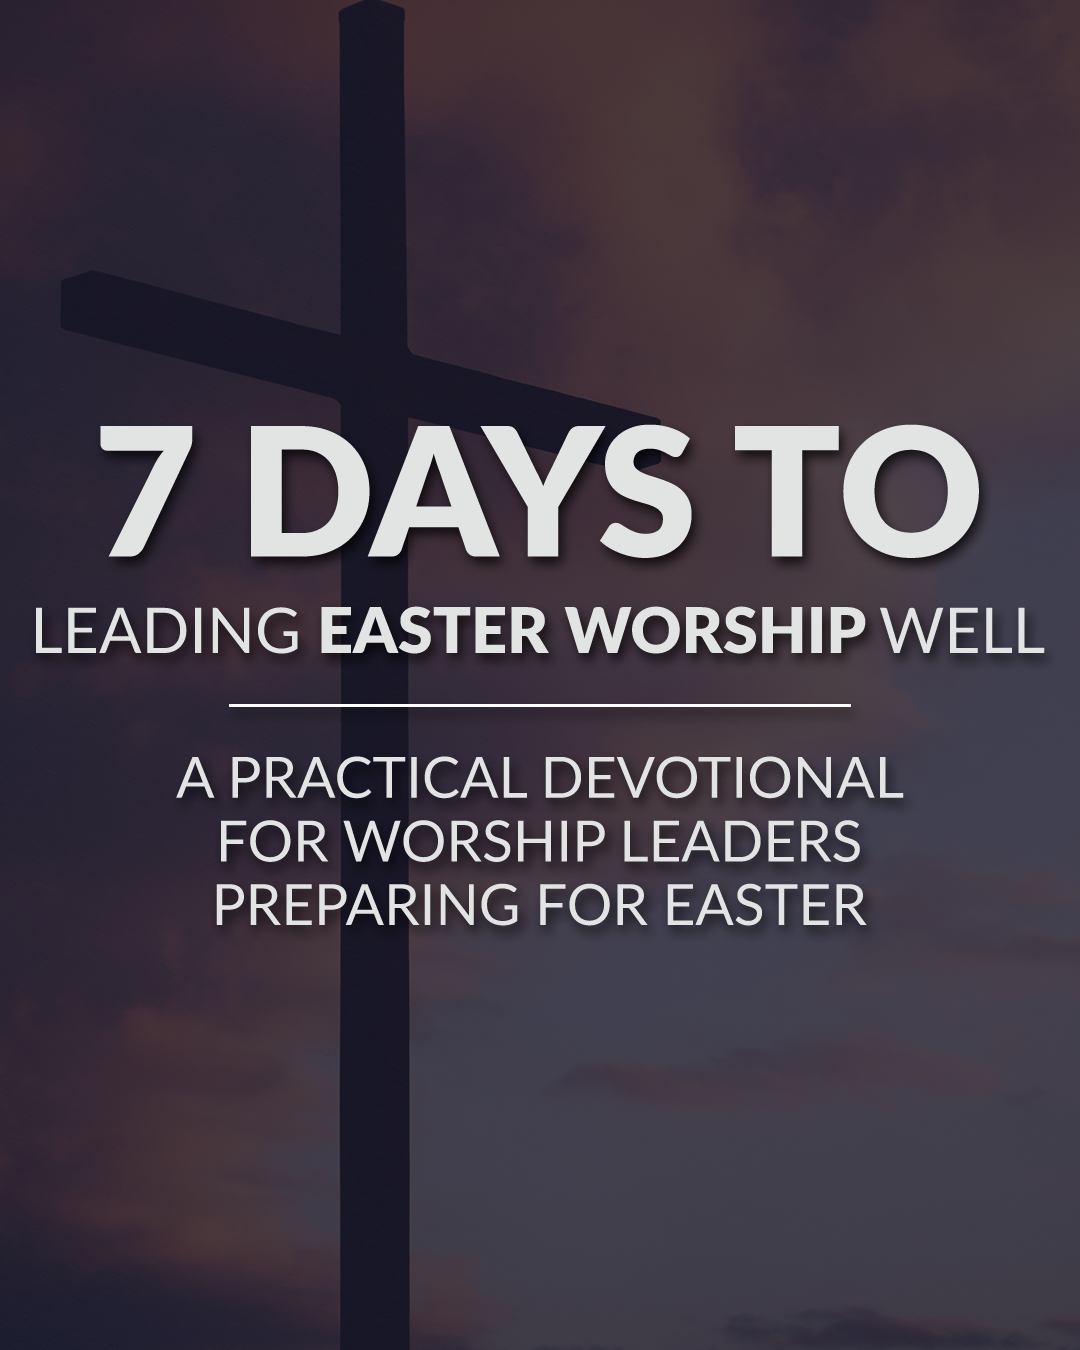 7 Days To Leading Easter Worship Well